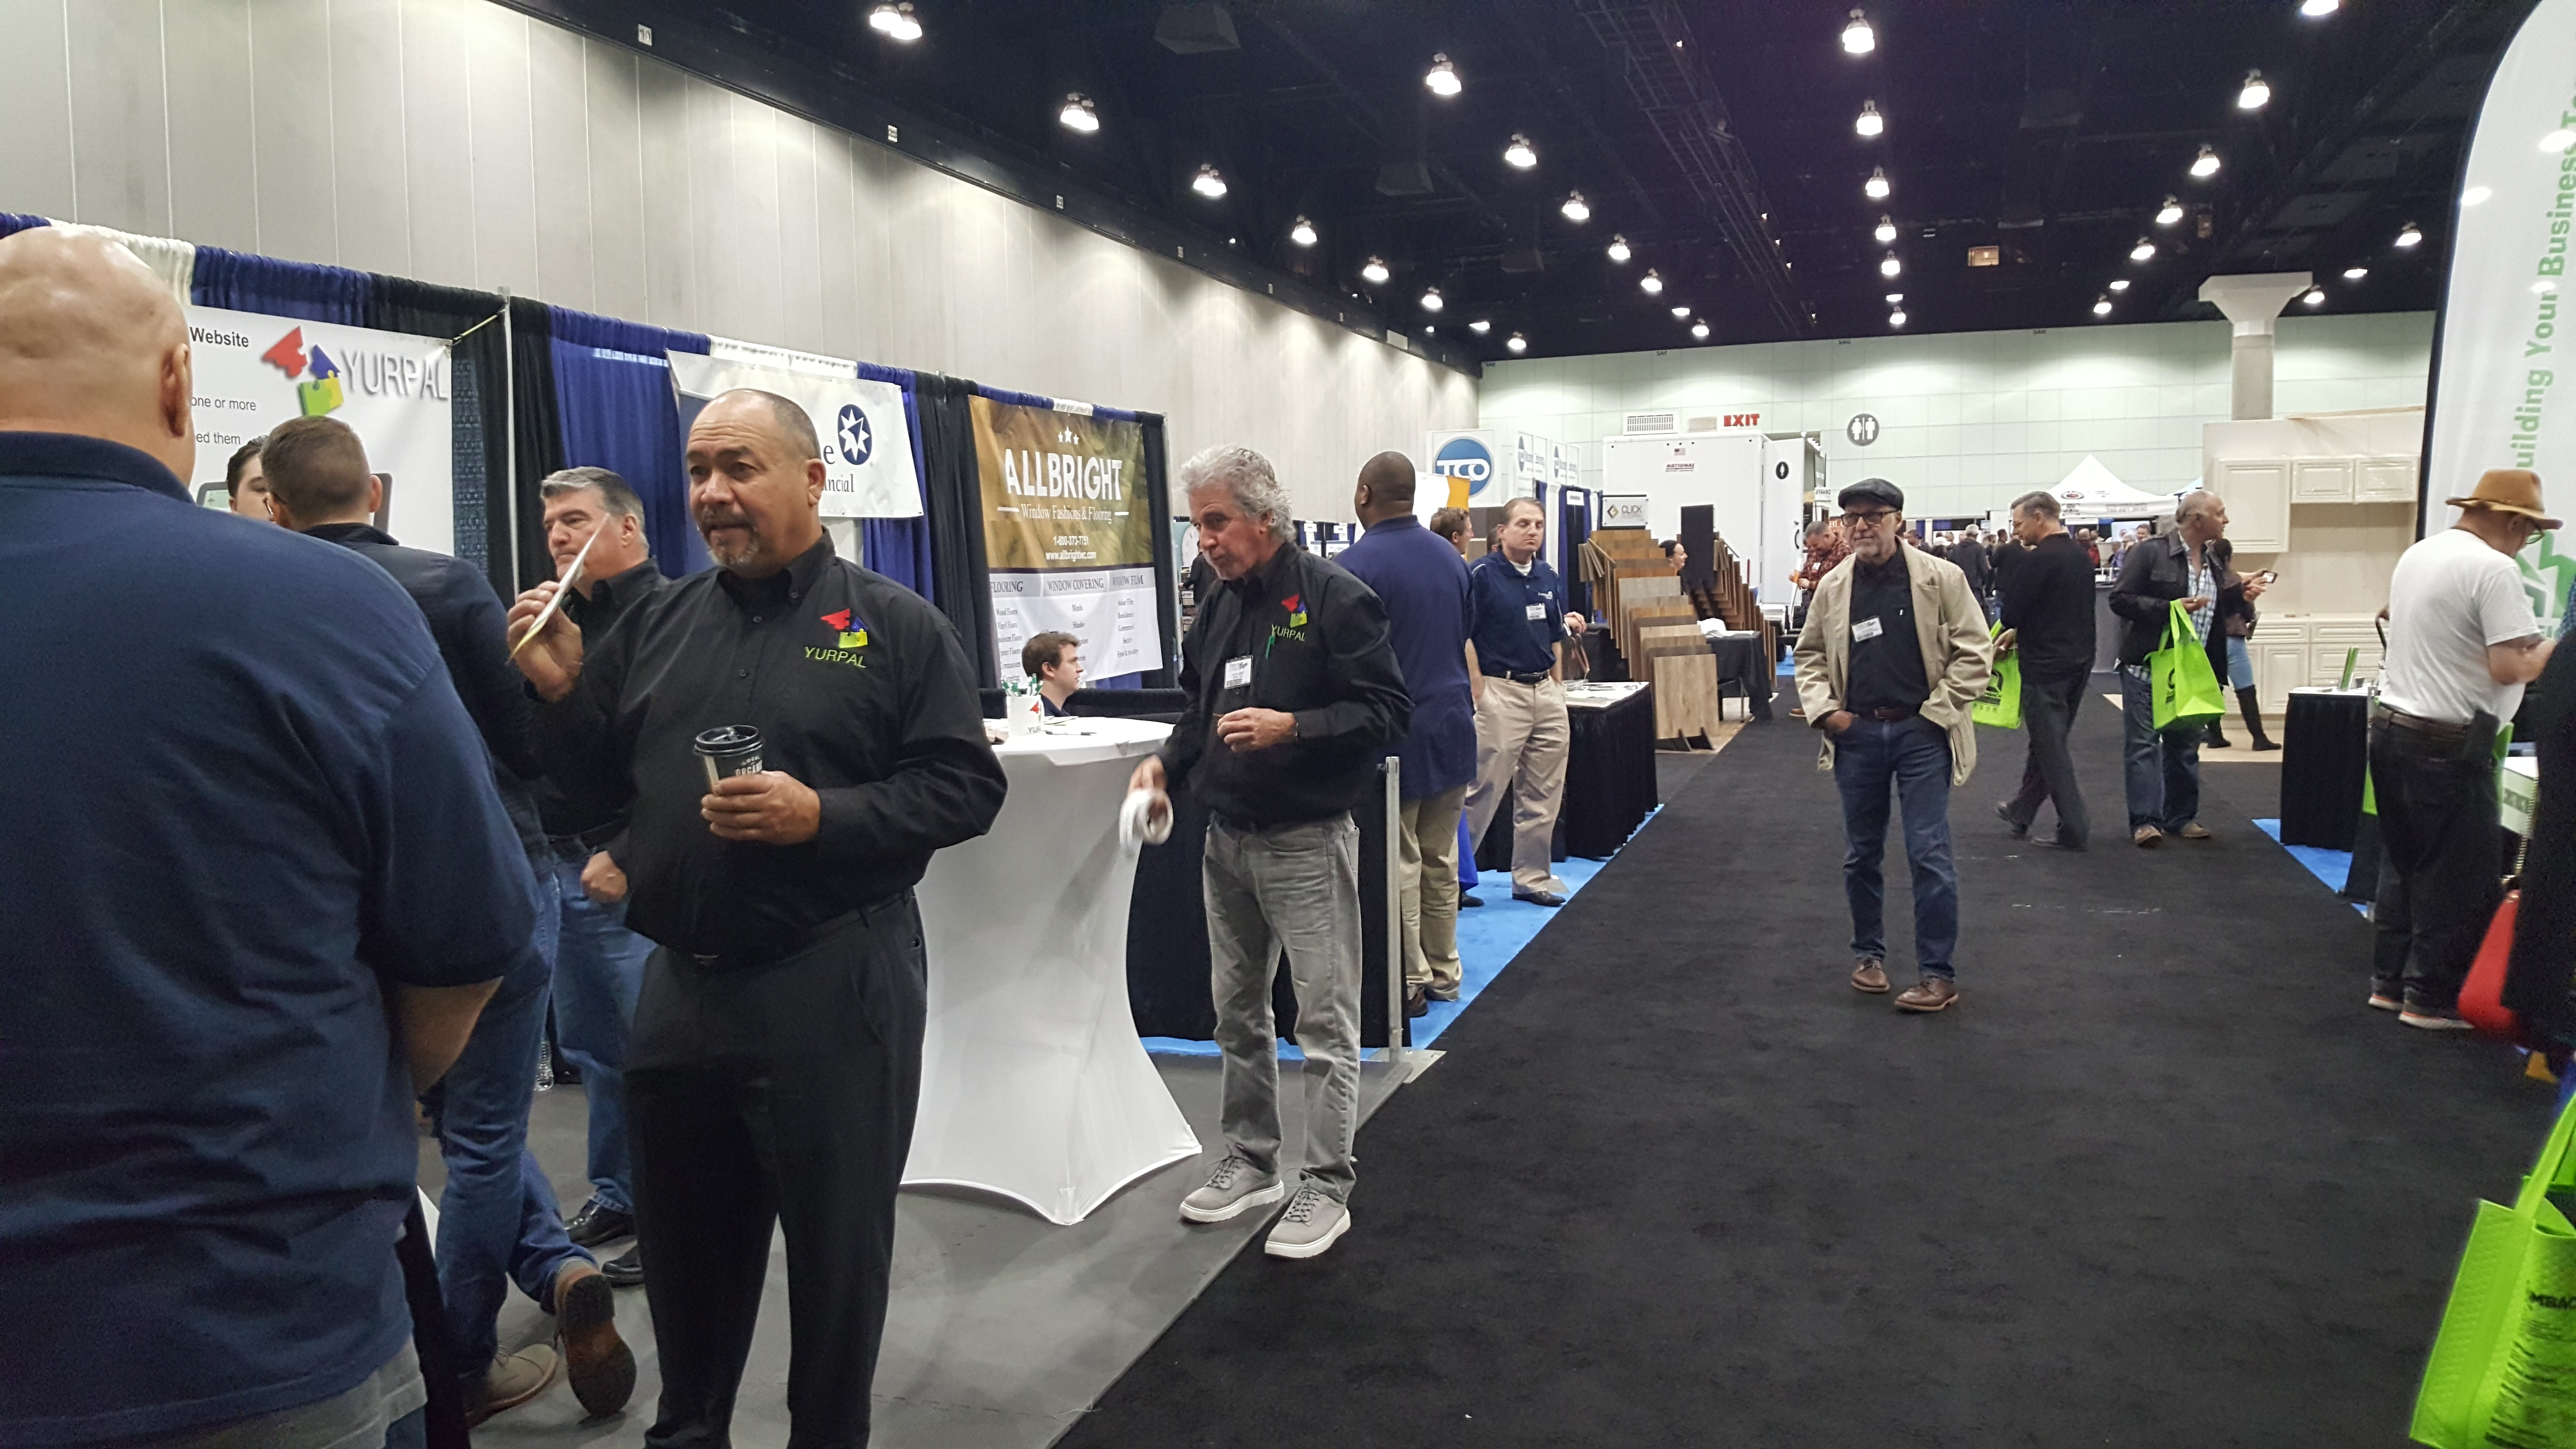 build-expo-exhibitor-hall-crowd-2